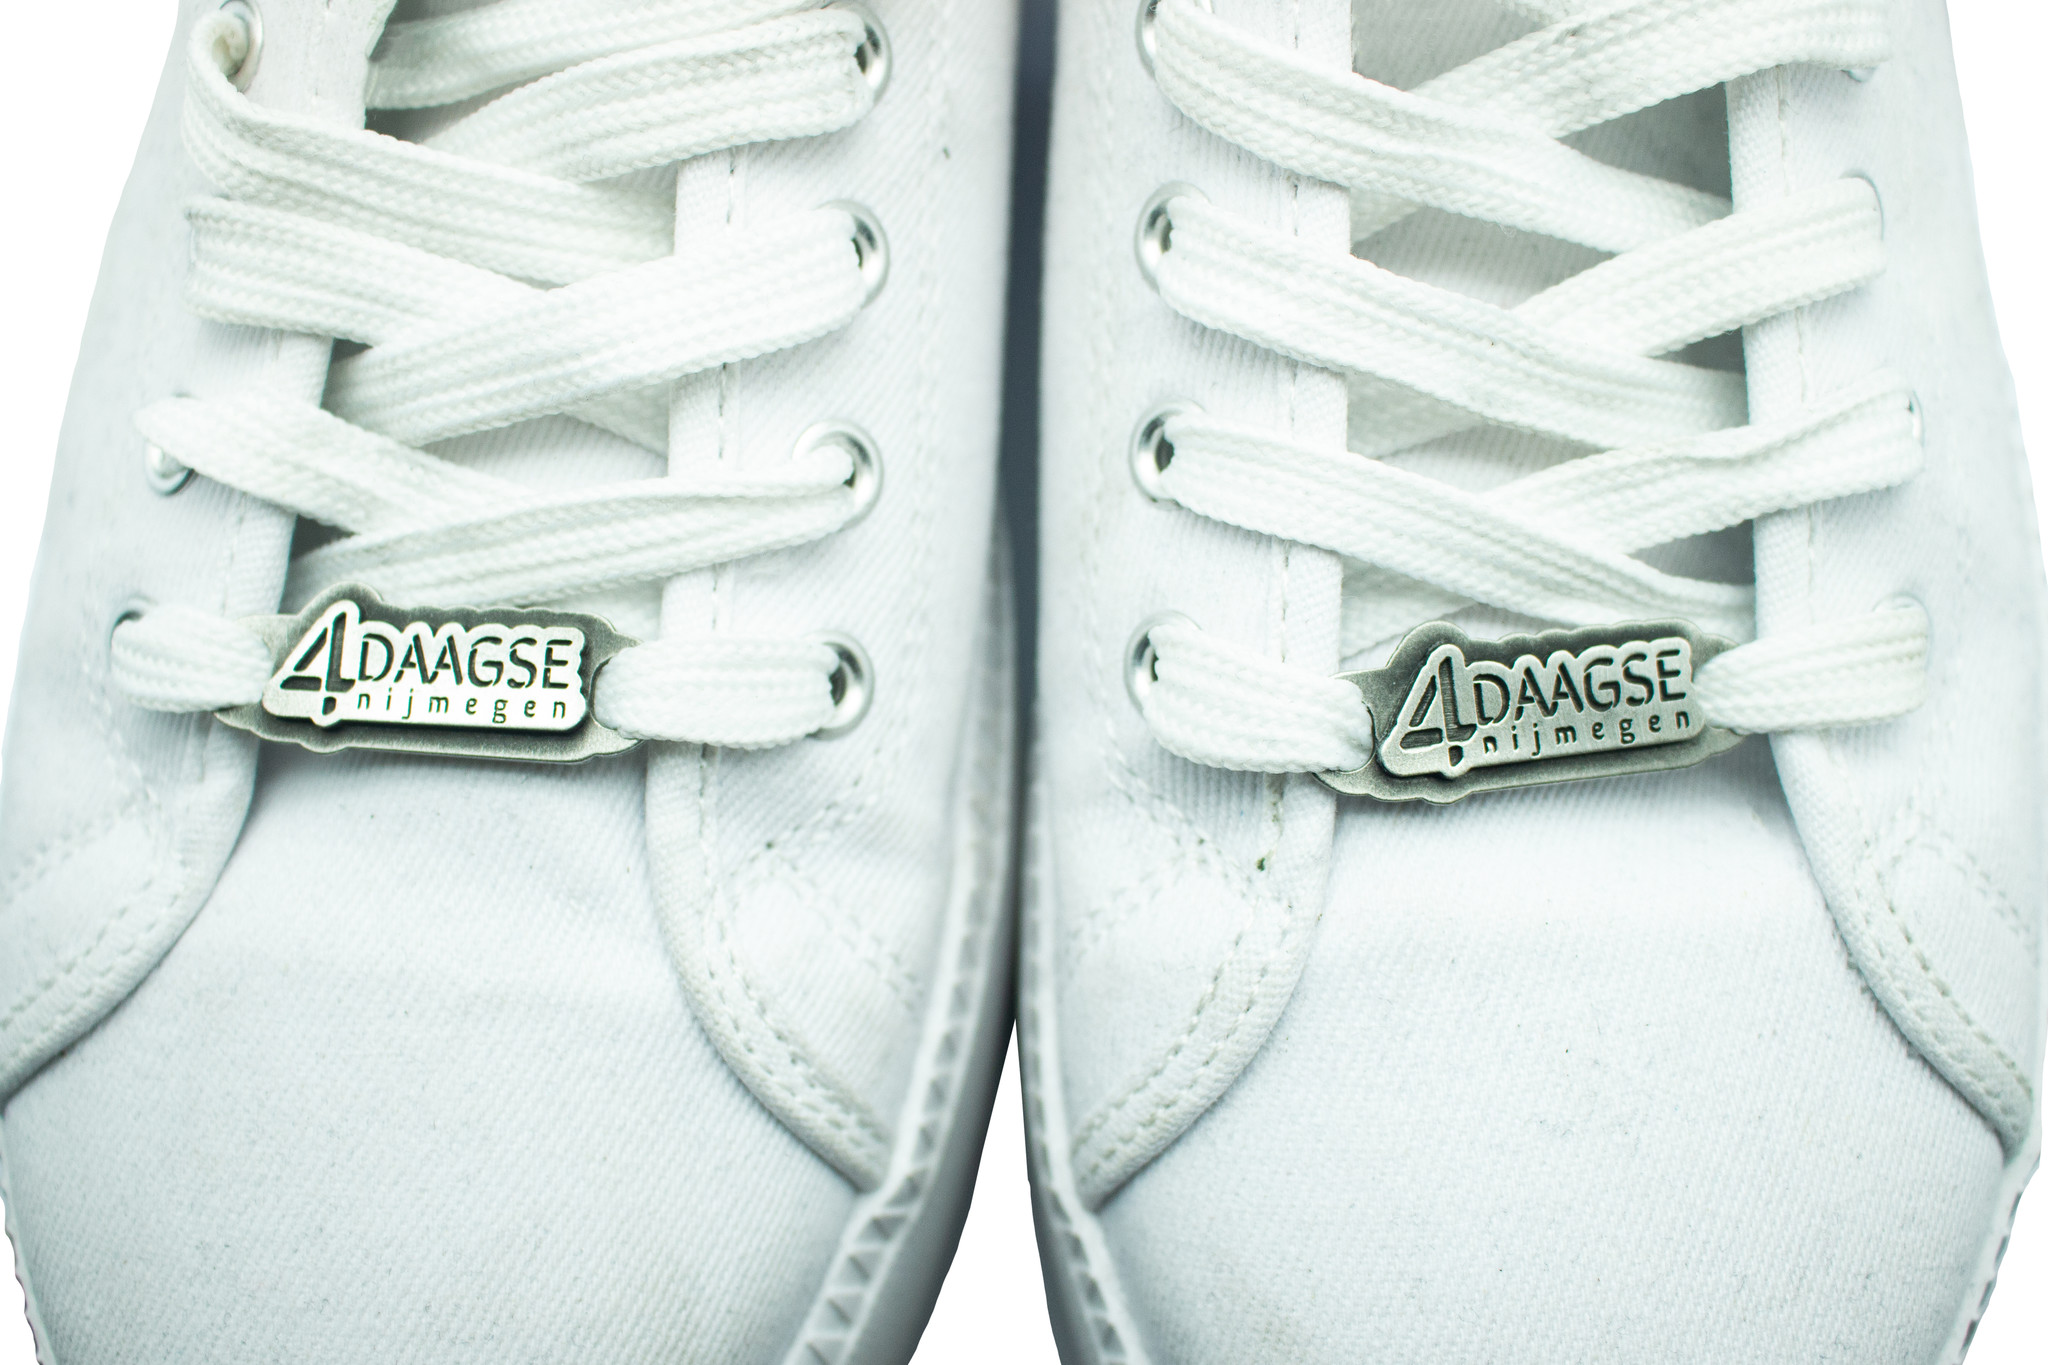 DTR Shoelace tags 4Daagse